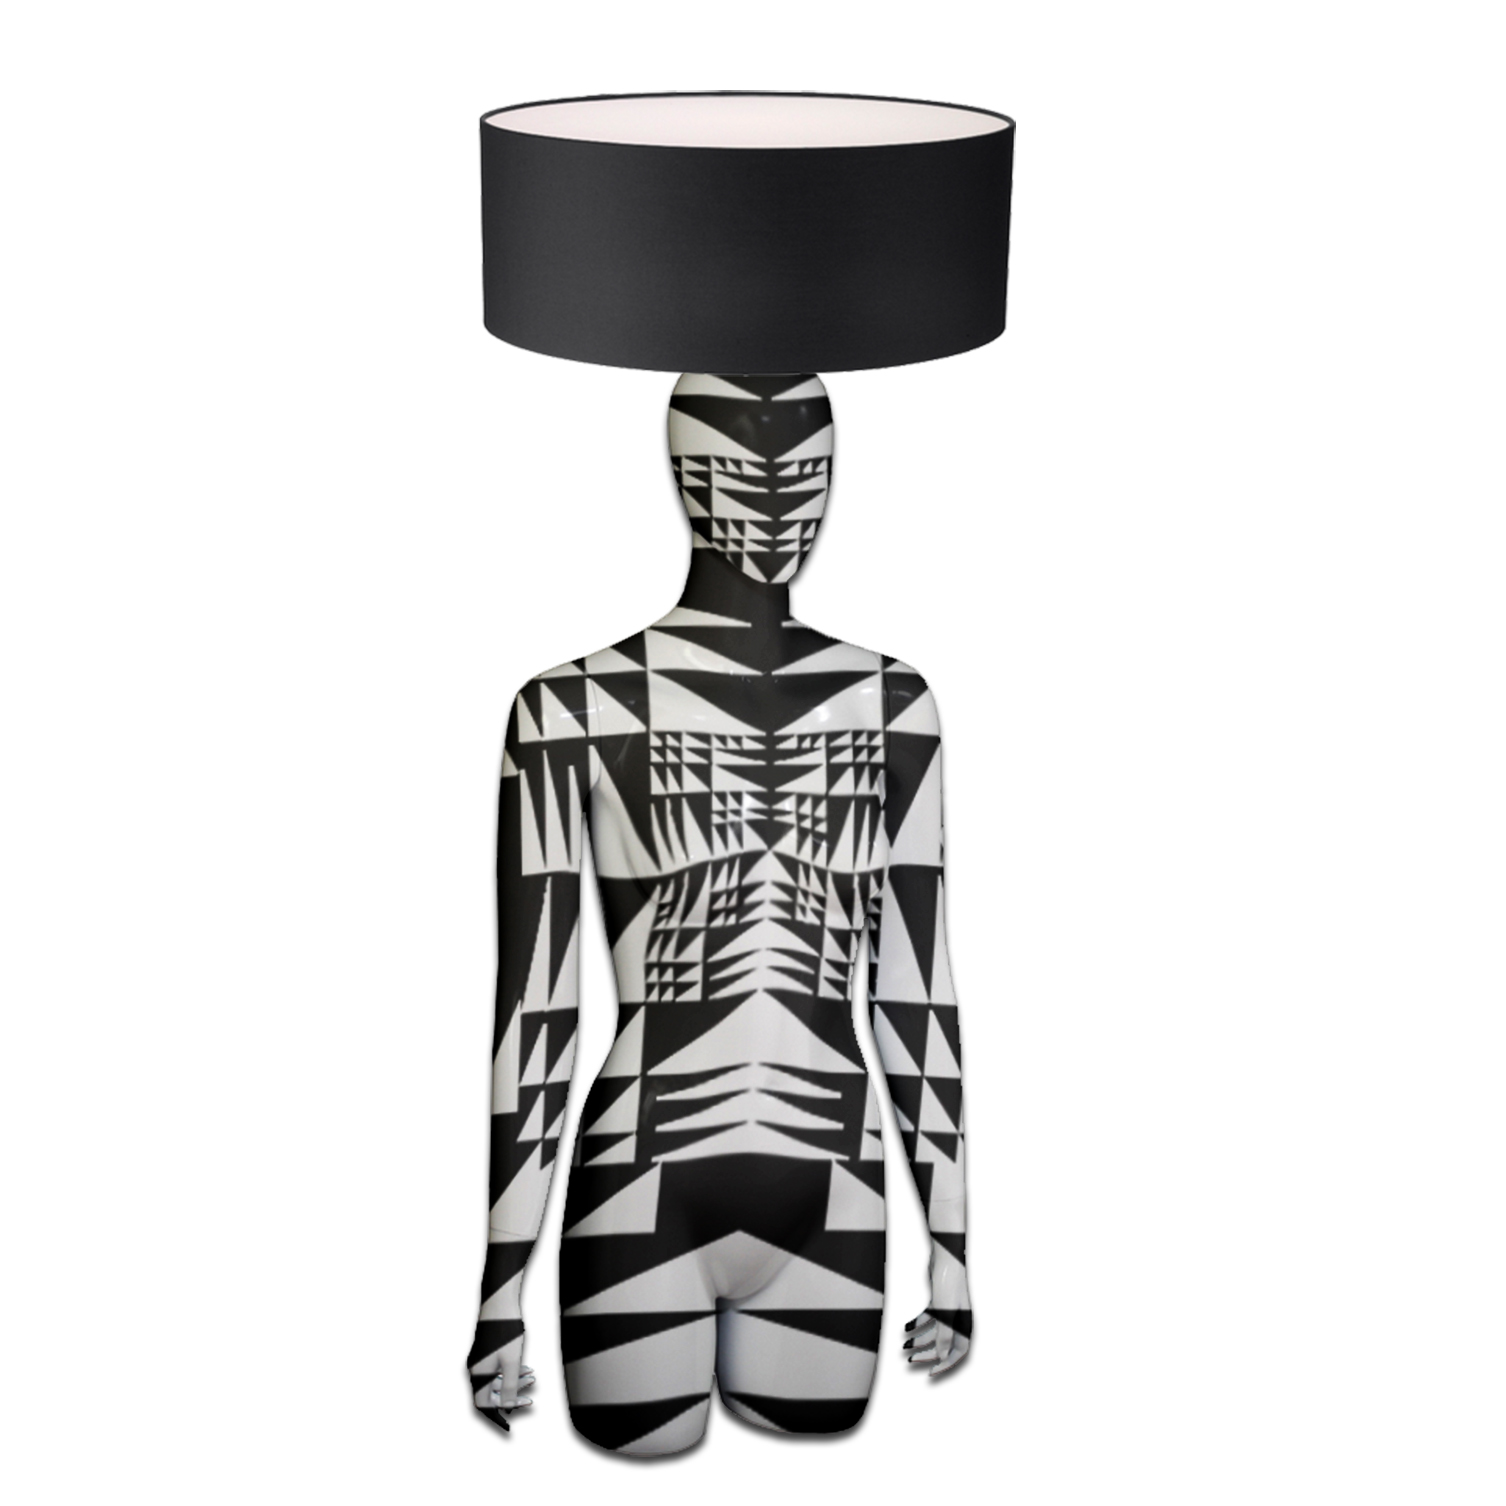 Mannequin Table Lamp_Head & Hands_Black & White Geometrical